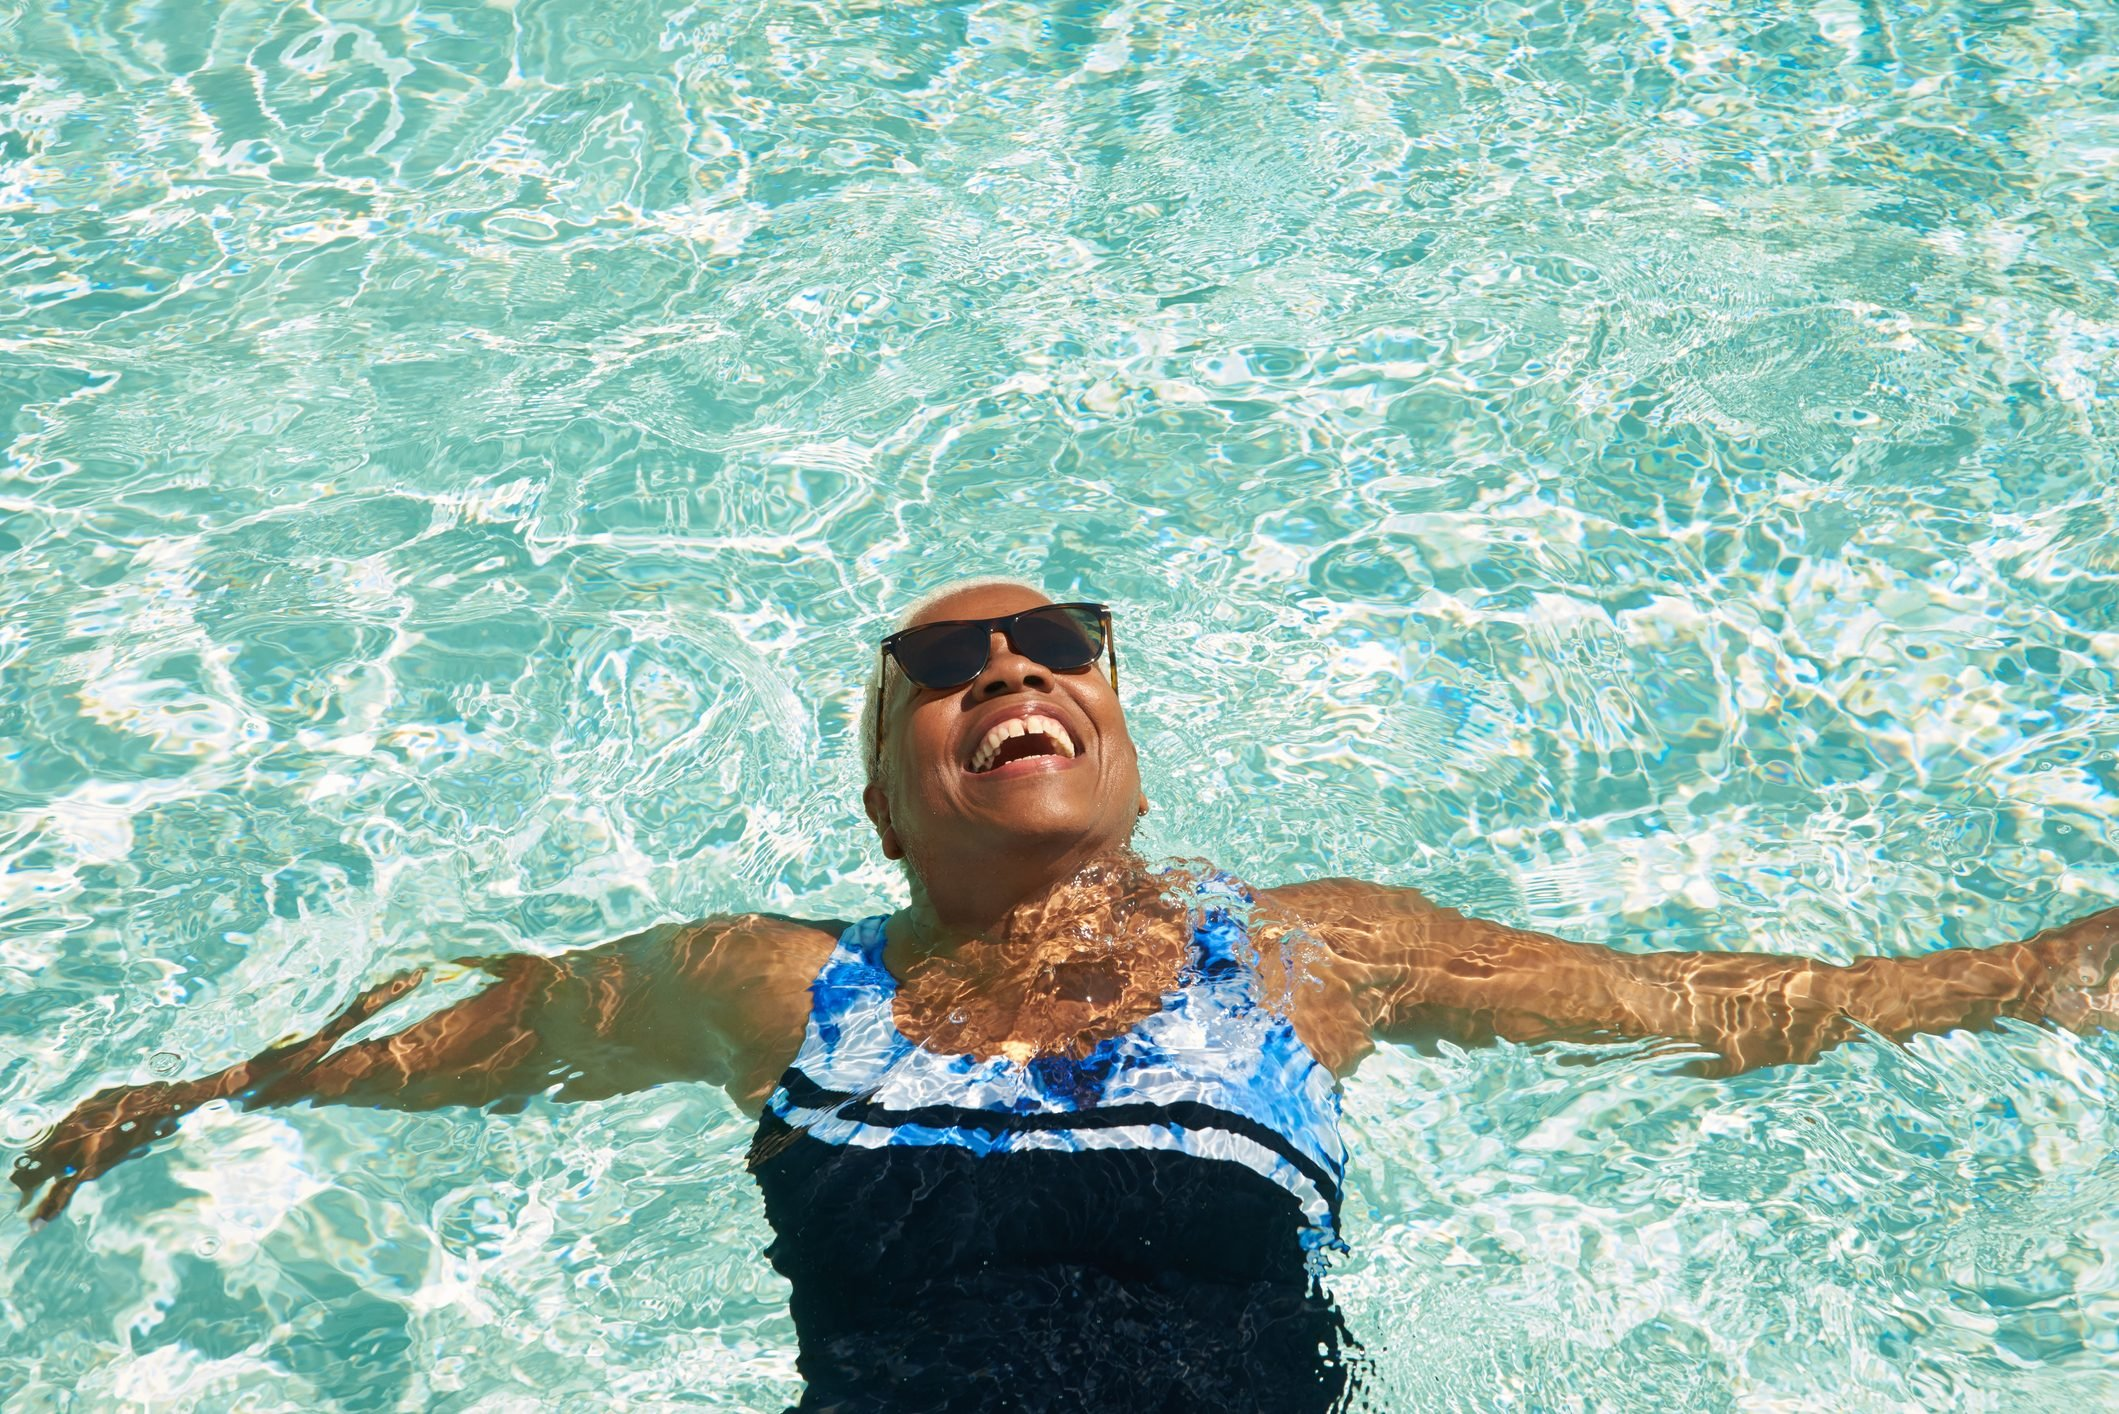 A mature woman relaxes in a swimming pool